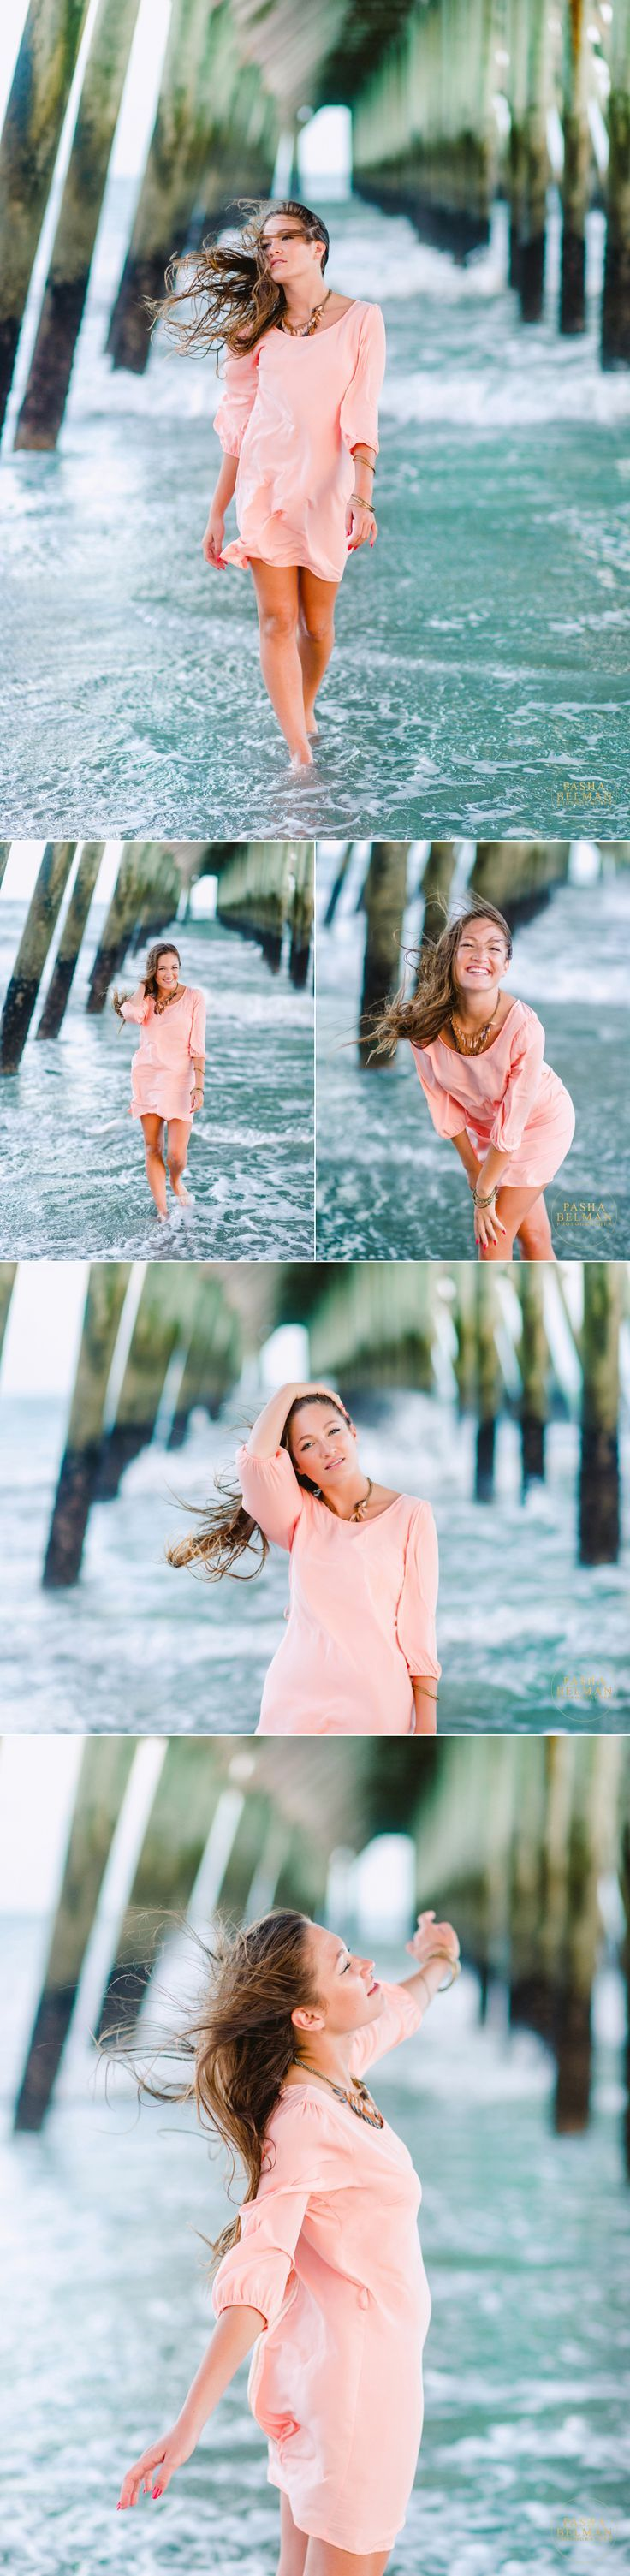 Senior pictures ideas for girls | Charleston senior pictures | myrtle beach high school senior photography | senior portraits in myrtle beach and Charleston | Myrtle Beach Senior Pictures - http://www.pashabelman.com